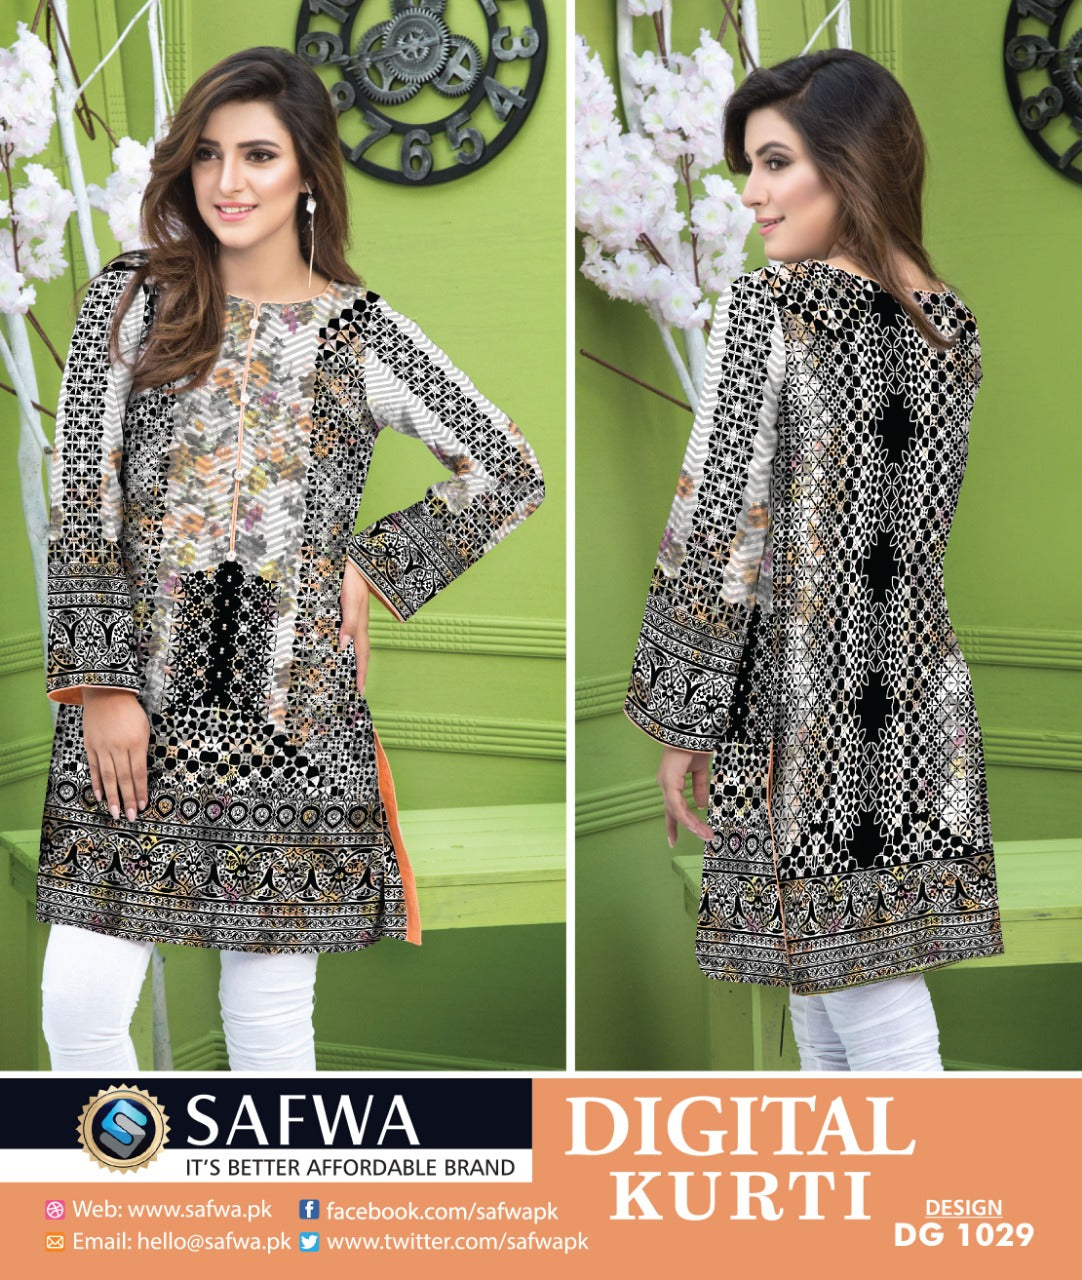 DG1029- SAFWA DIGITAL COTTON PRINT STITCH KURTI COLLECTION -SHIRT KURTI KAMEEZ-Shirt-Kurti-SAFWA -SAFWA Brand Pakistan online shopping for Designer Dresses SAFWA DRESS DESIGN, DRESSES, PAKISTANI DRESSES